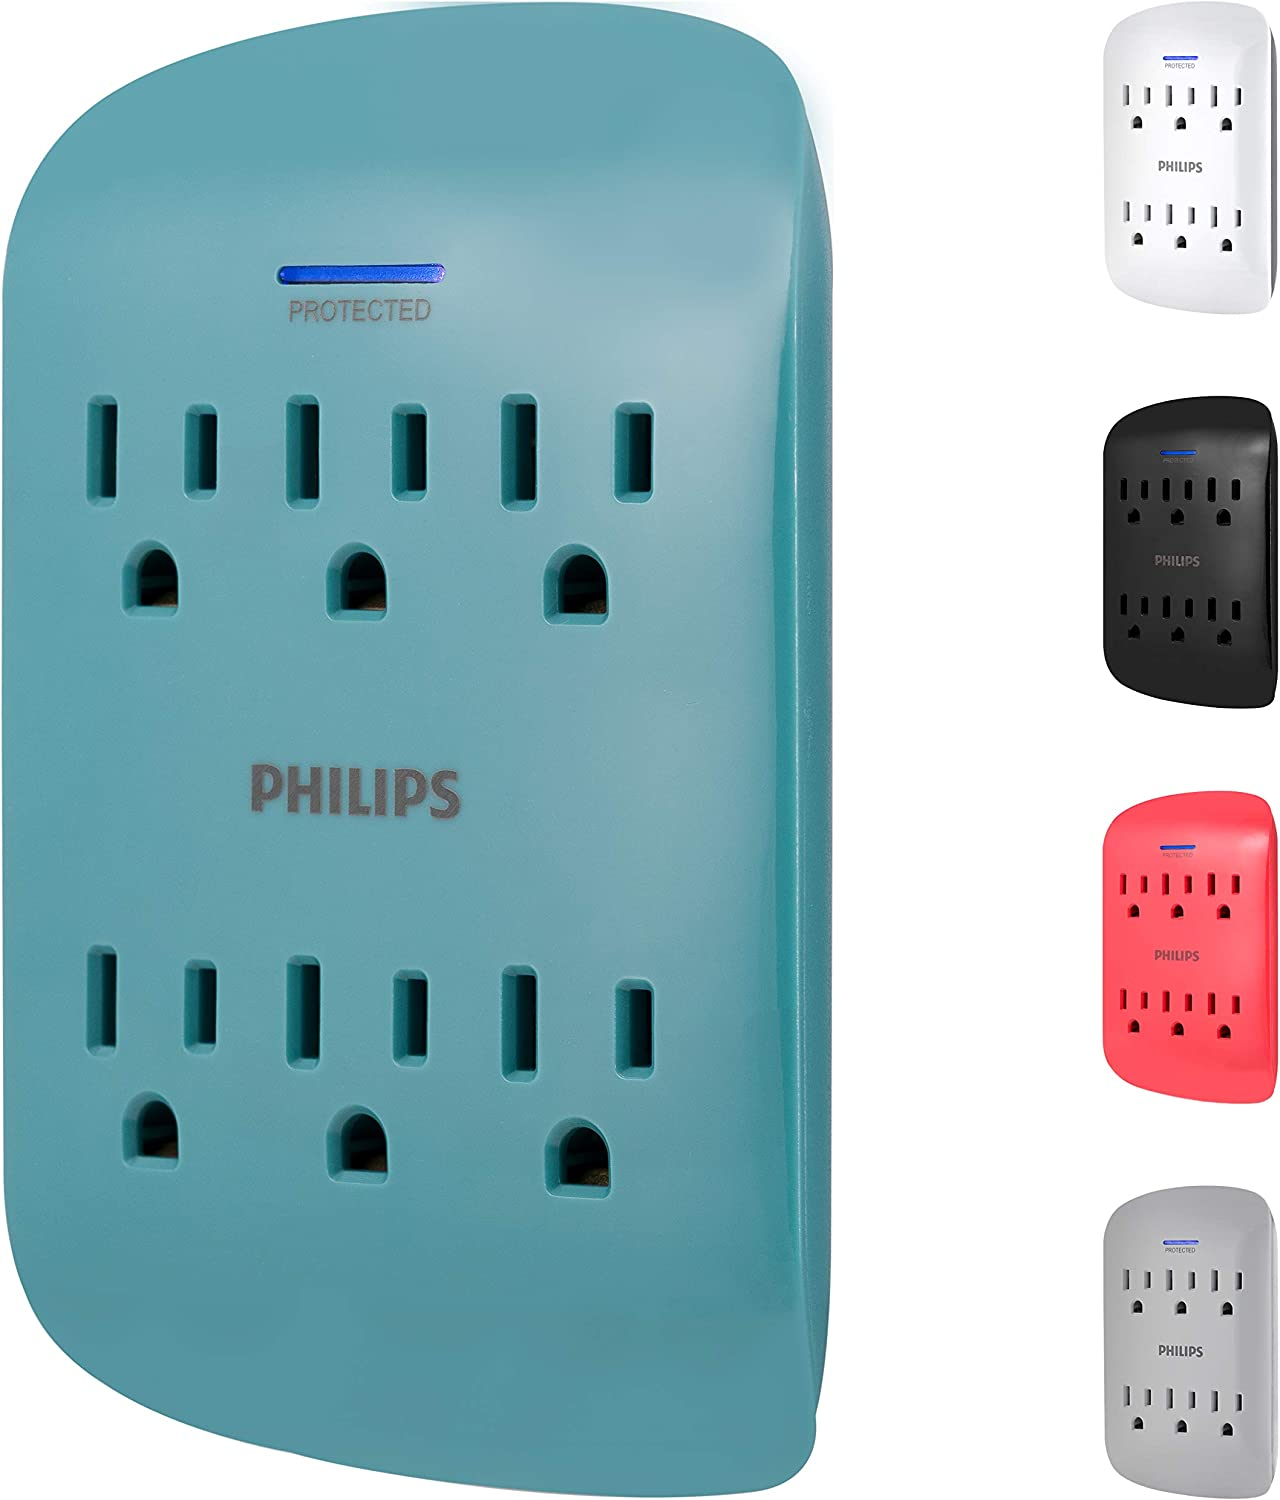 PHILIPS 6-Outlet Surge Protector Tap, 900 Joules, 3-Prong, Space Saving Design, Protection Indicator LED Light, Teal, SPP3461TL/37